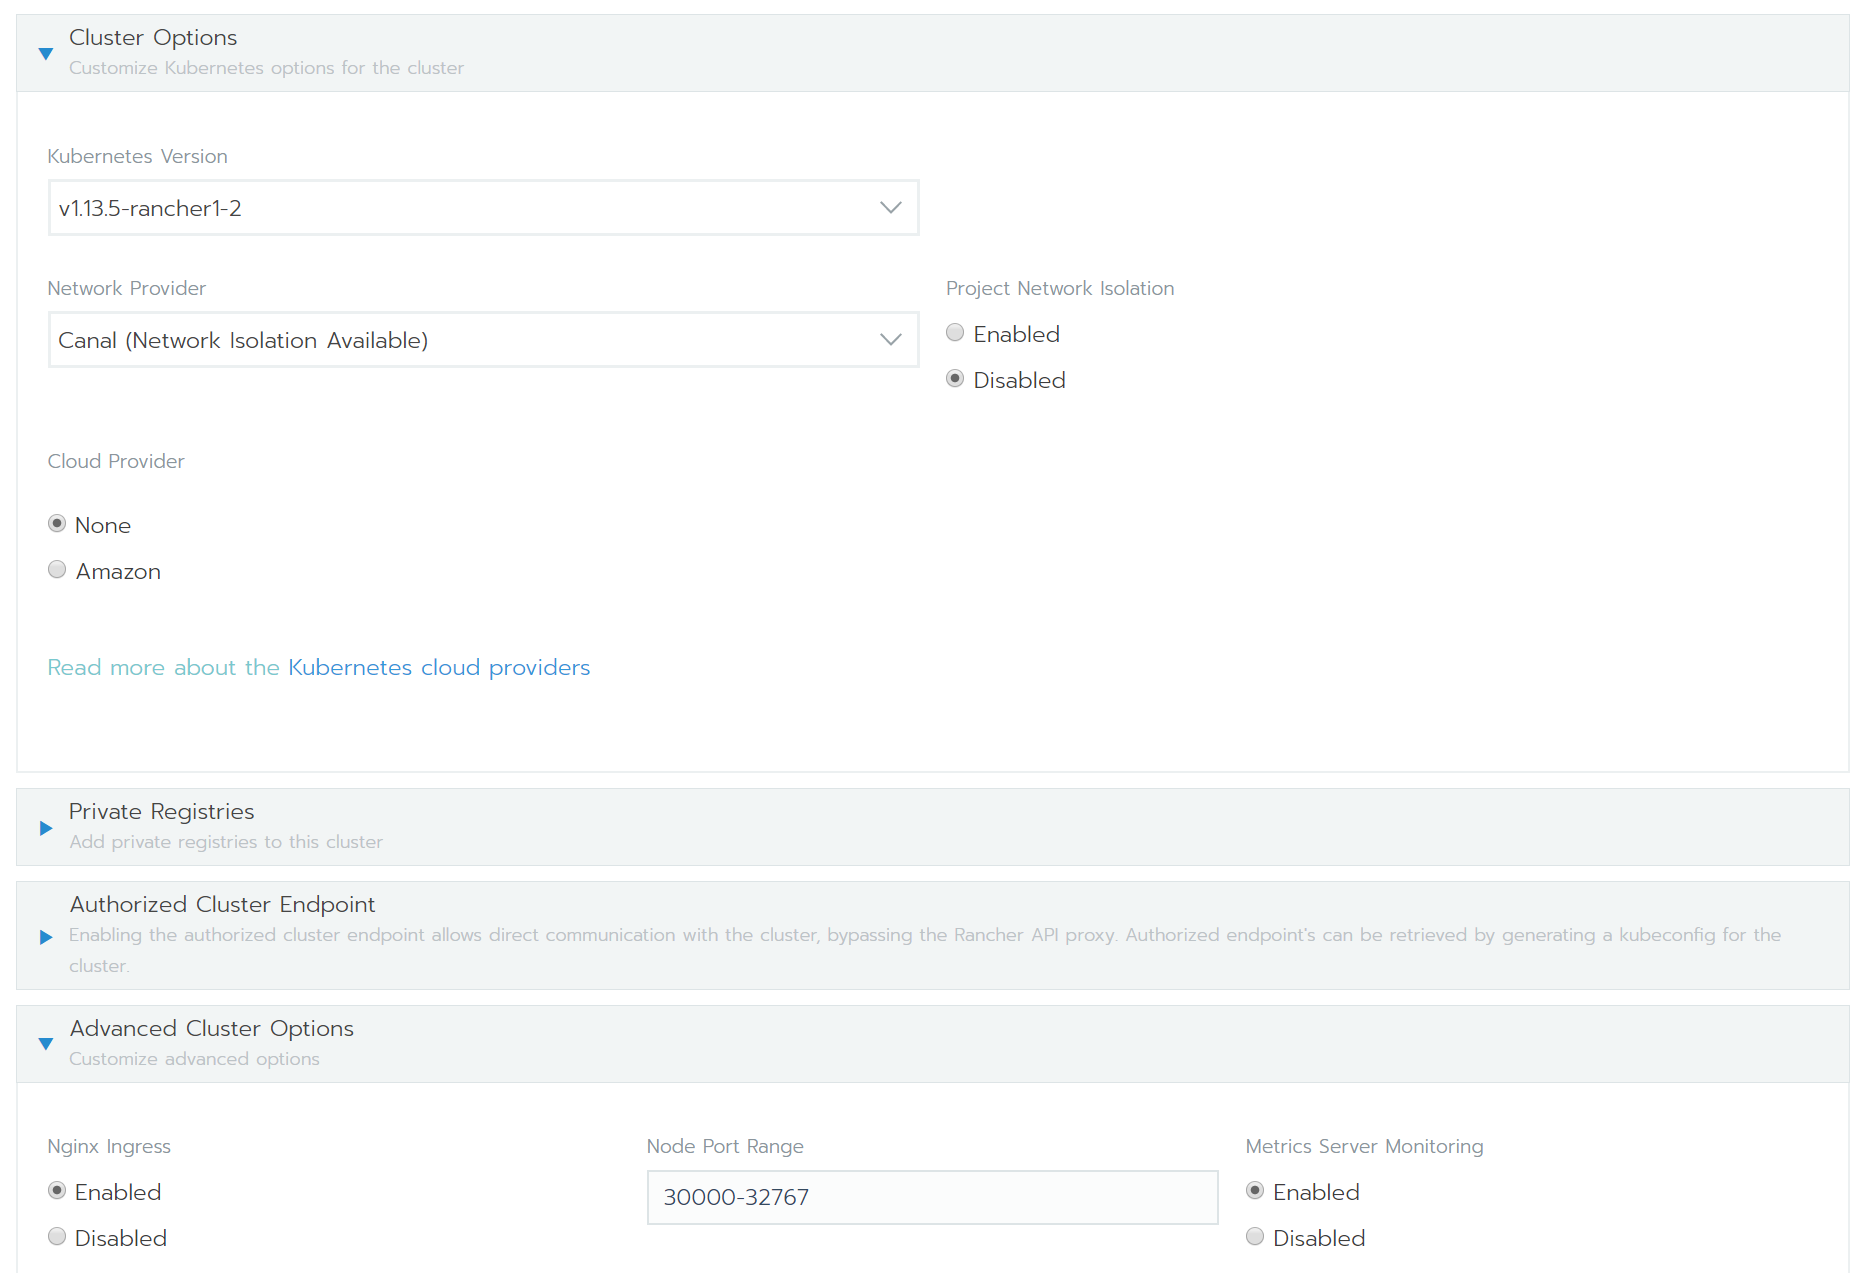 Deploy a Kubernetes Cluster with Cluster Monitoring in Amazon EC2